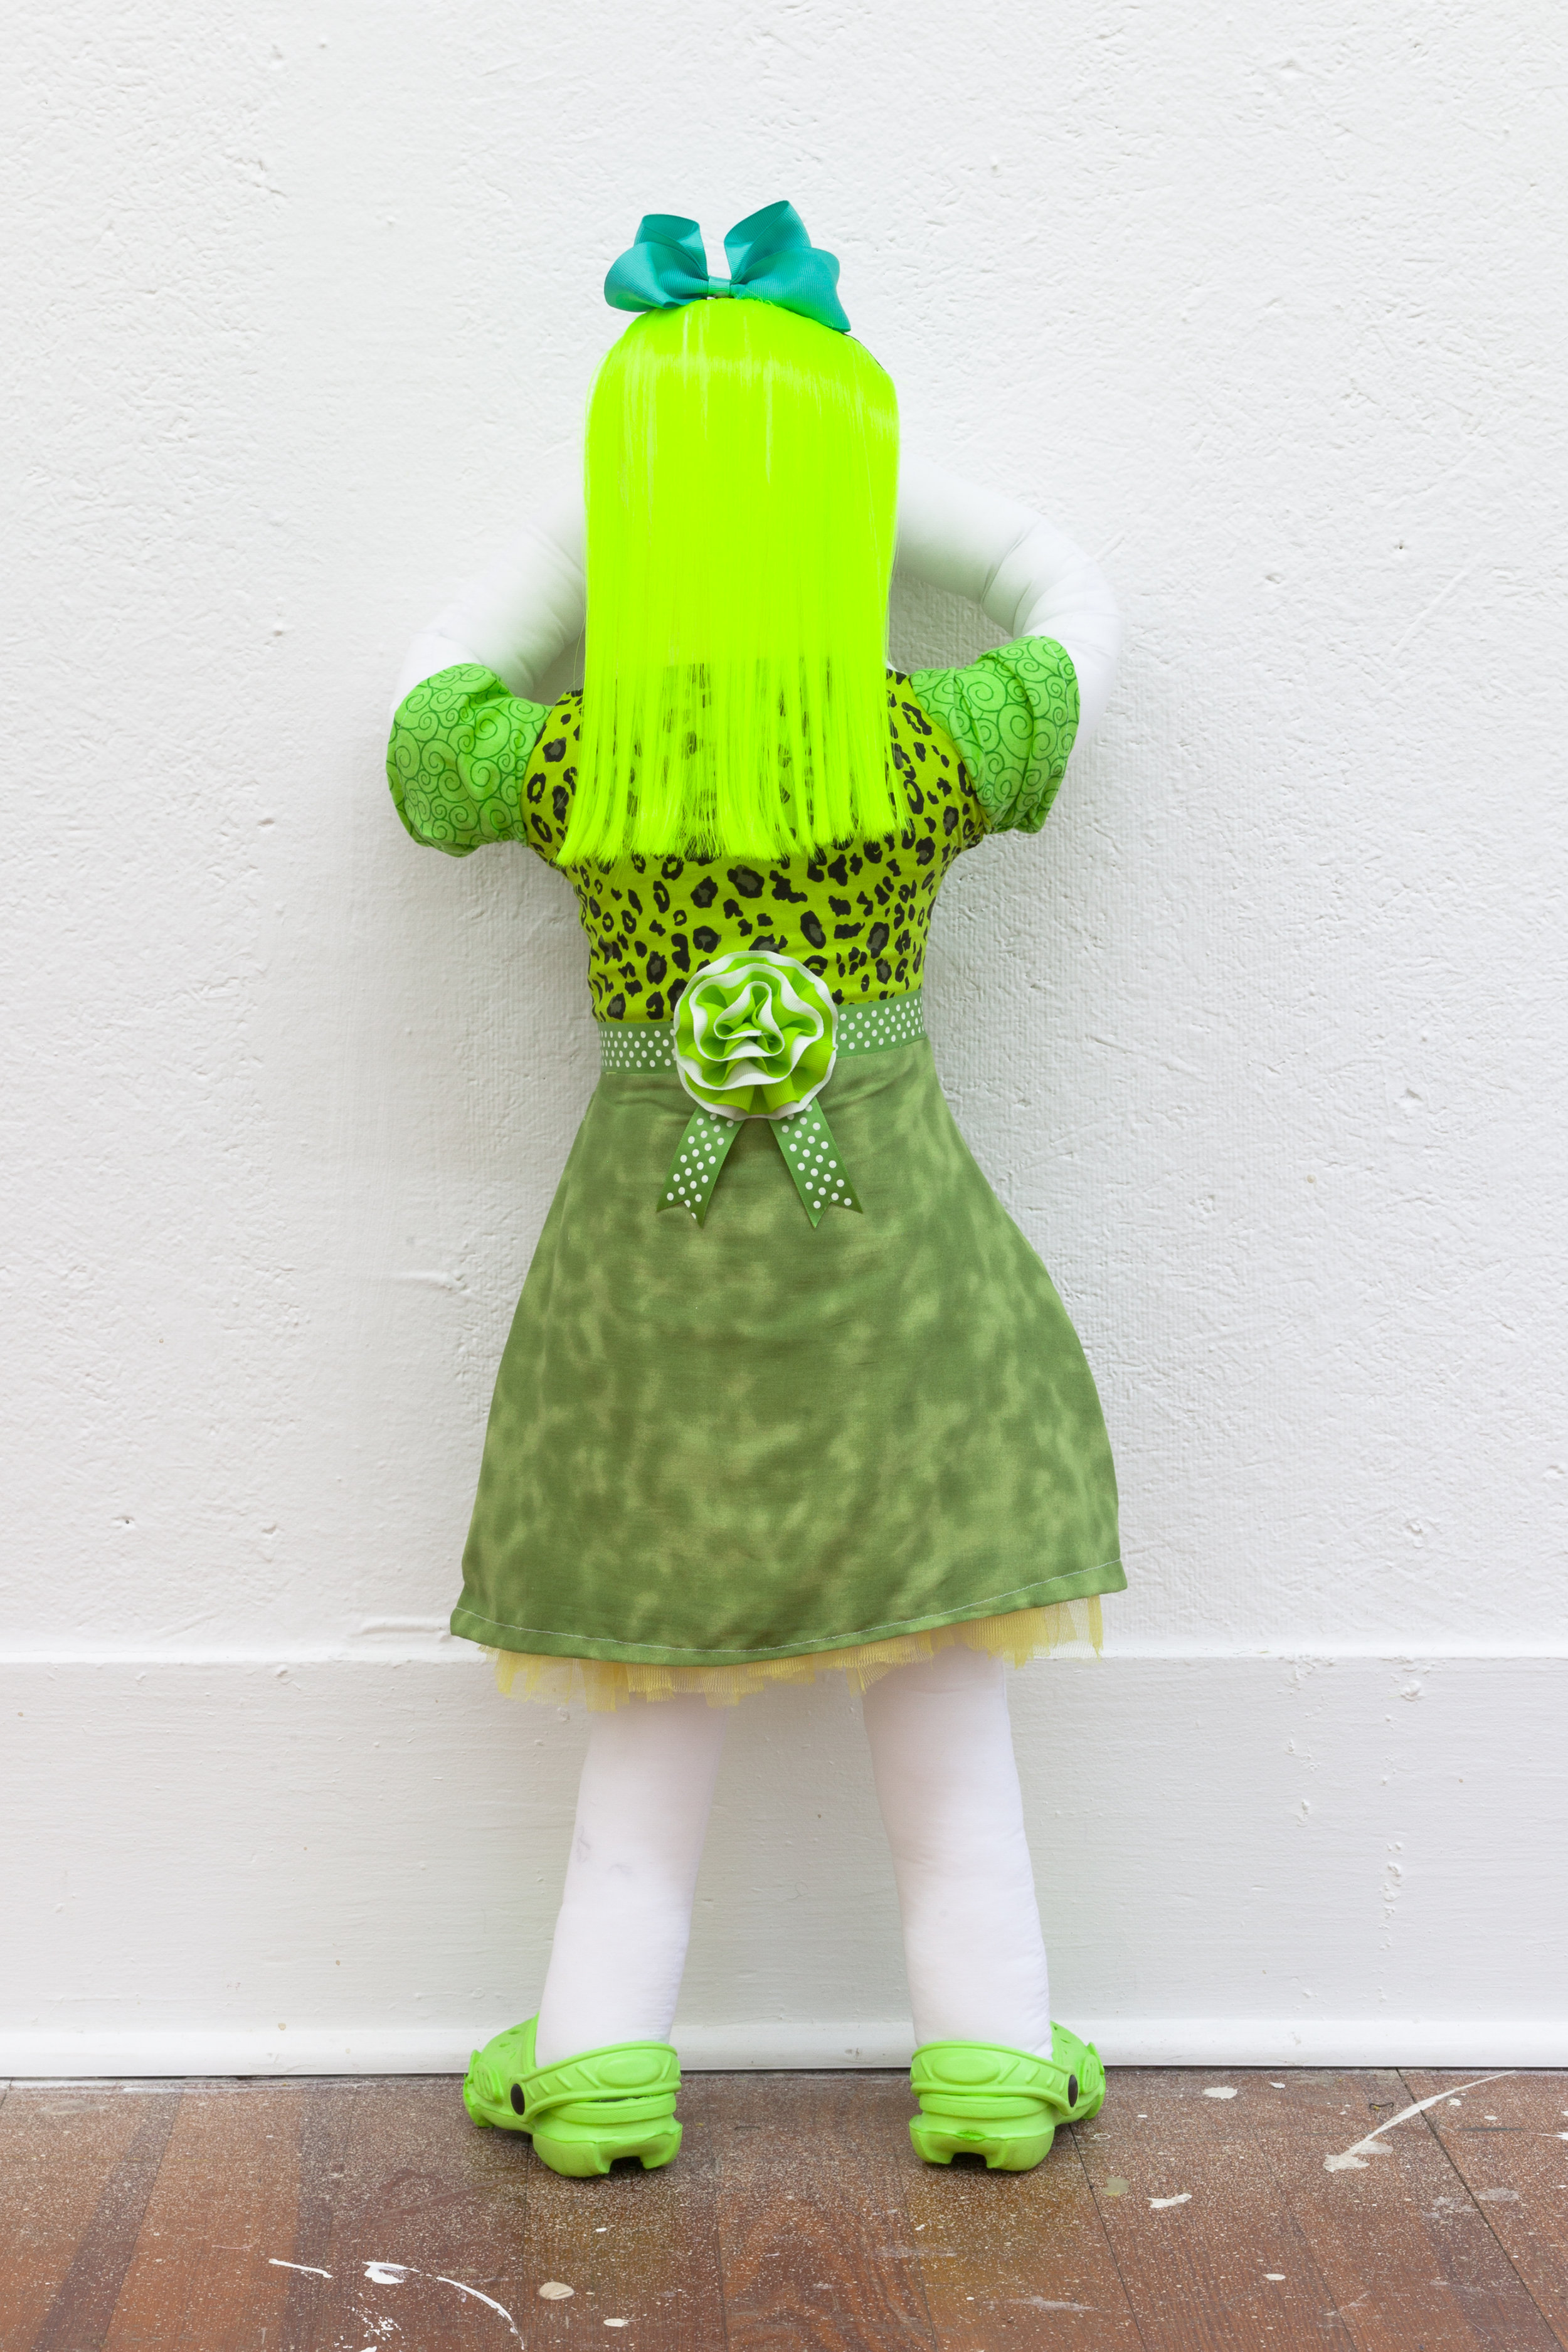 Abby Lloyd, Ruth, 2019, Fabric, Poly-Fil, ribbon, hair extensions, found materials Approximately 36 x 14 inches